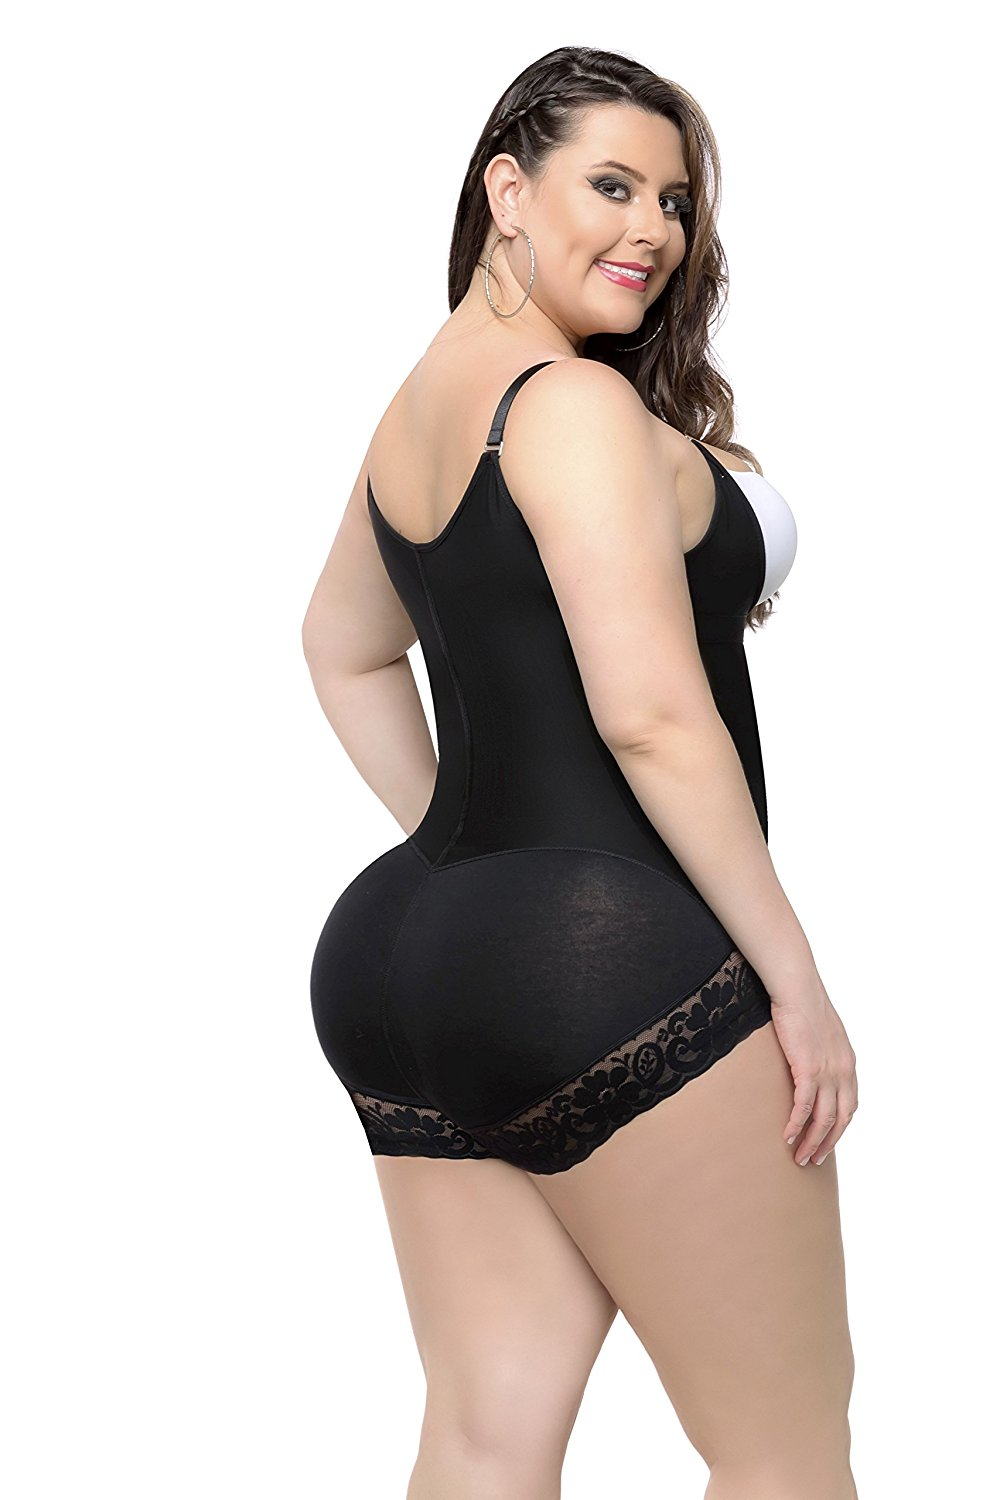 plus size lingerie waist trainer 3xl 4xl 5xl 6xl big wholesale women shapewear shapewear